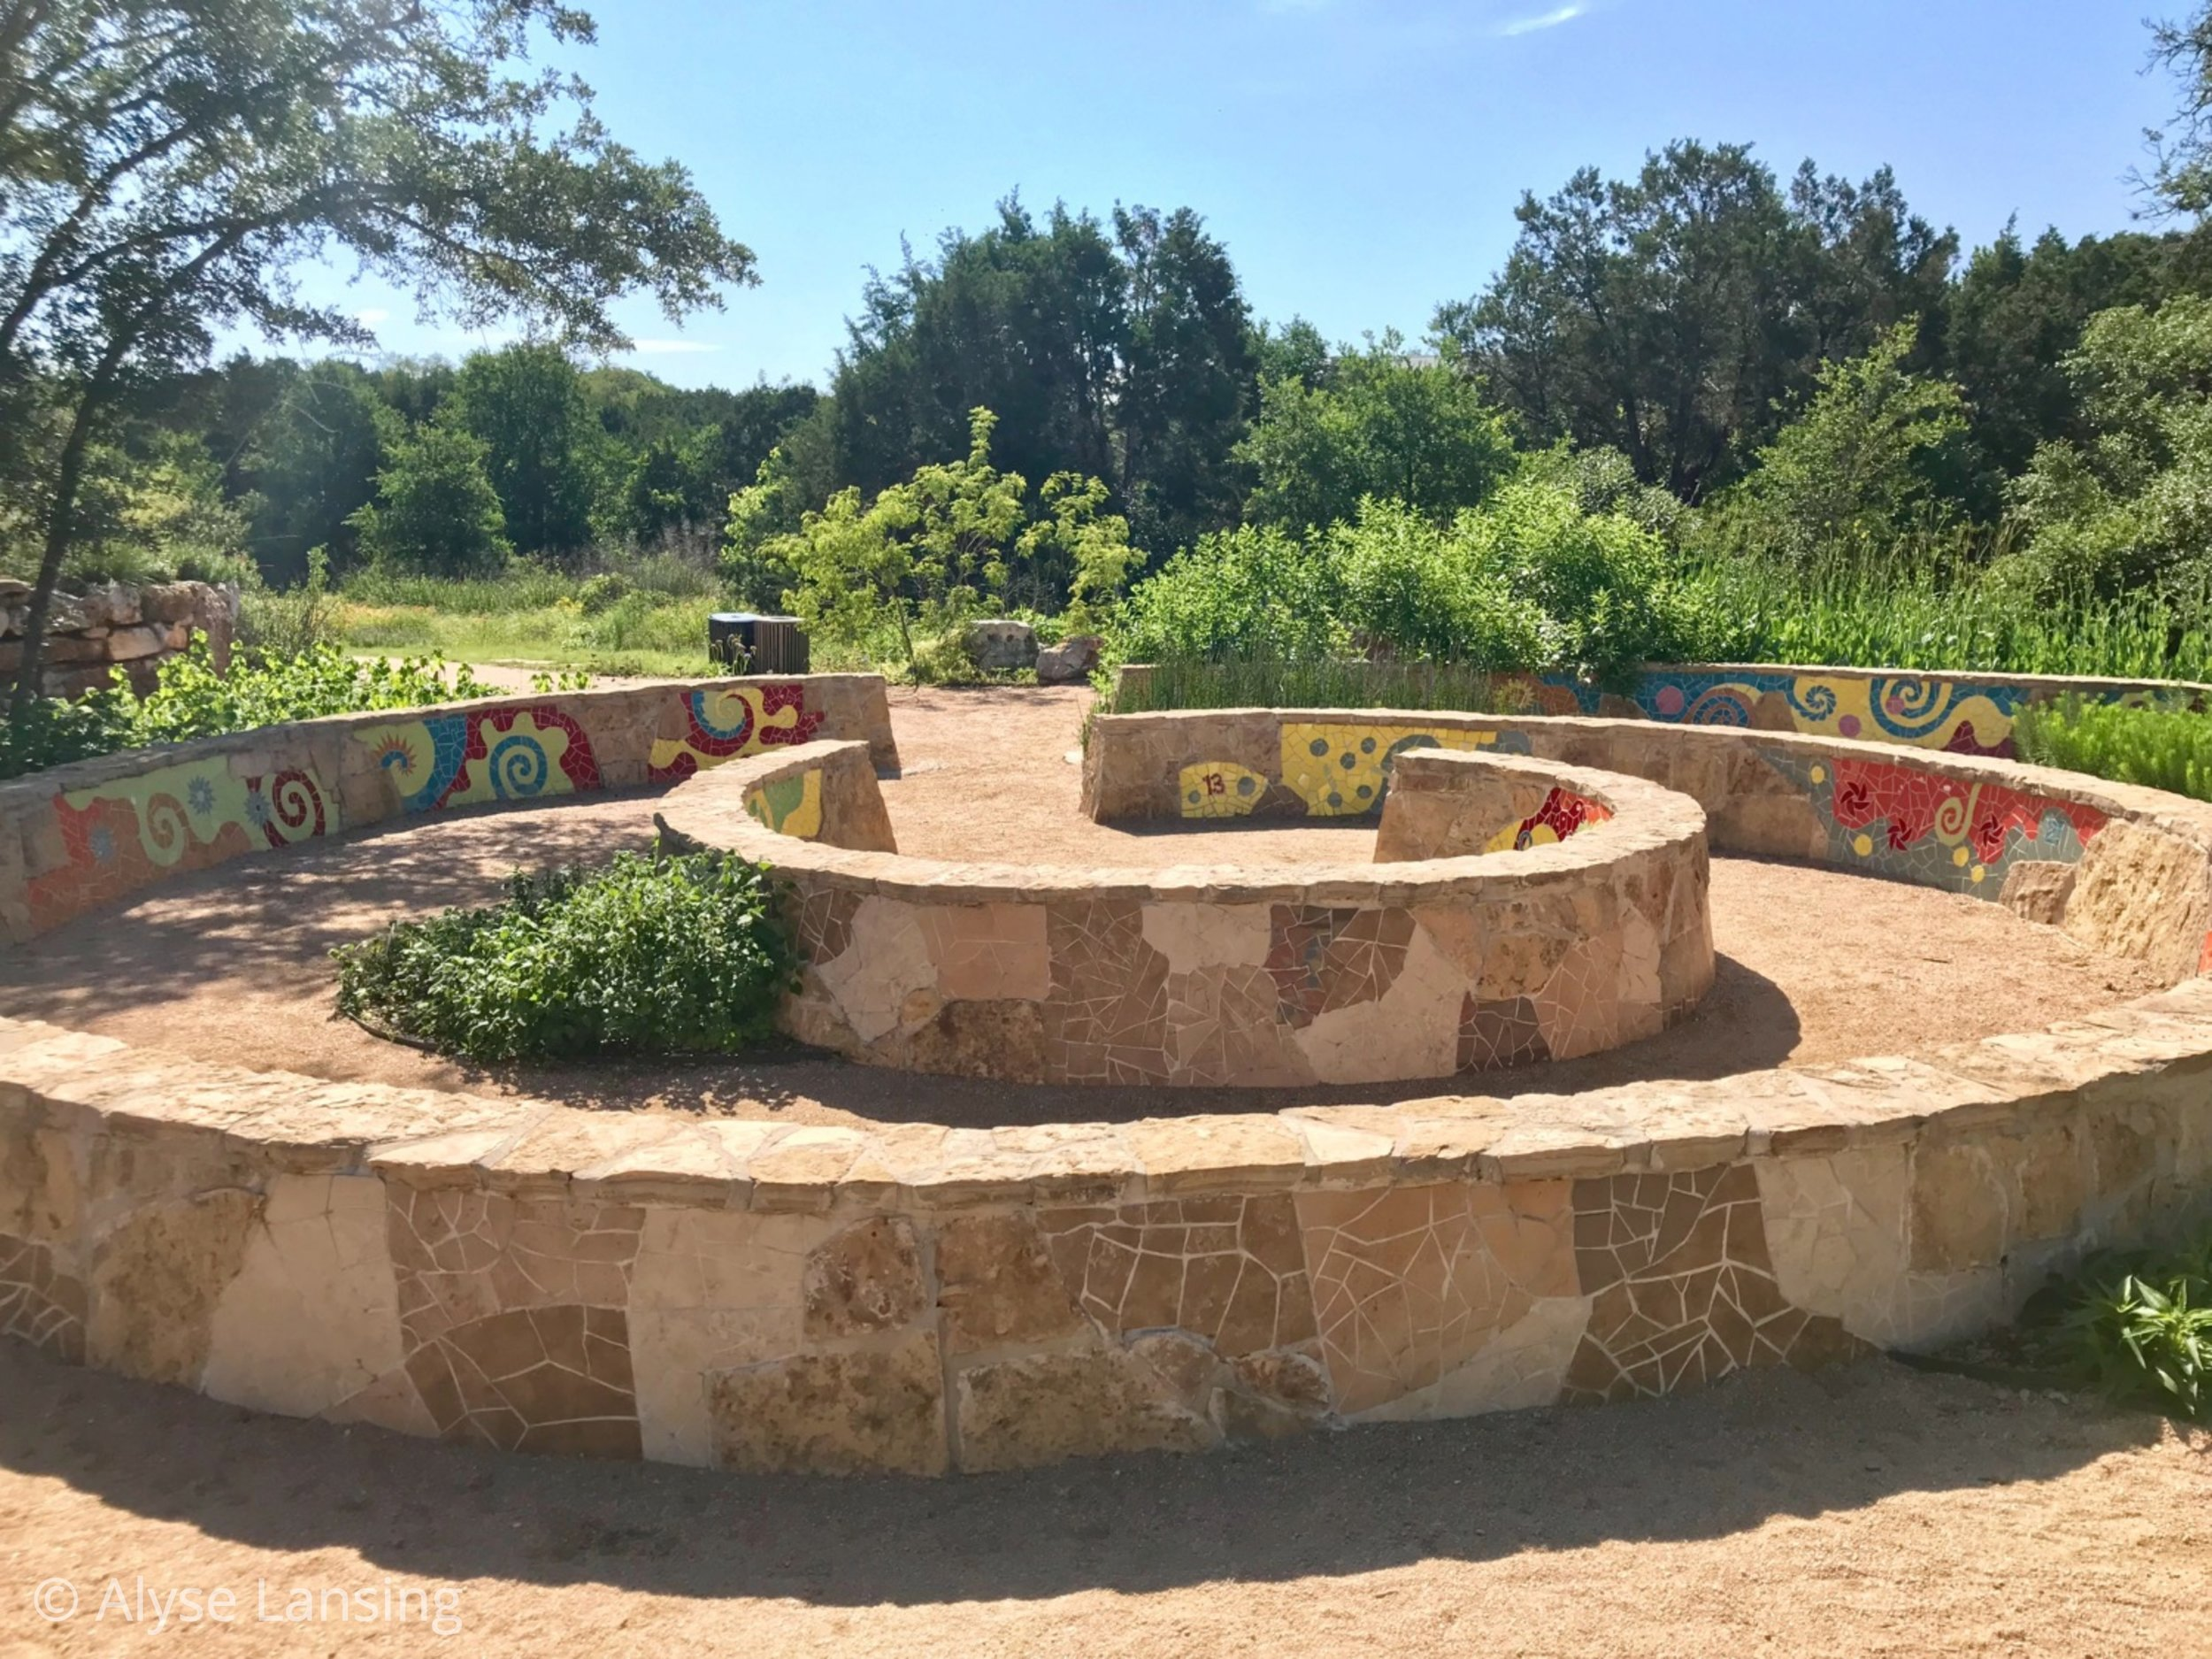 """First I came upon this mosaic wall, named """"Nature's Spiral,"""" that's fun to climb AND showcases the spirals of nature from sunflowers to shells to hurricanes."""